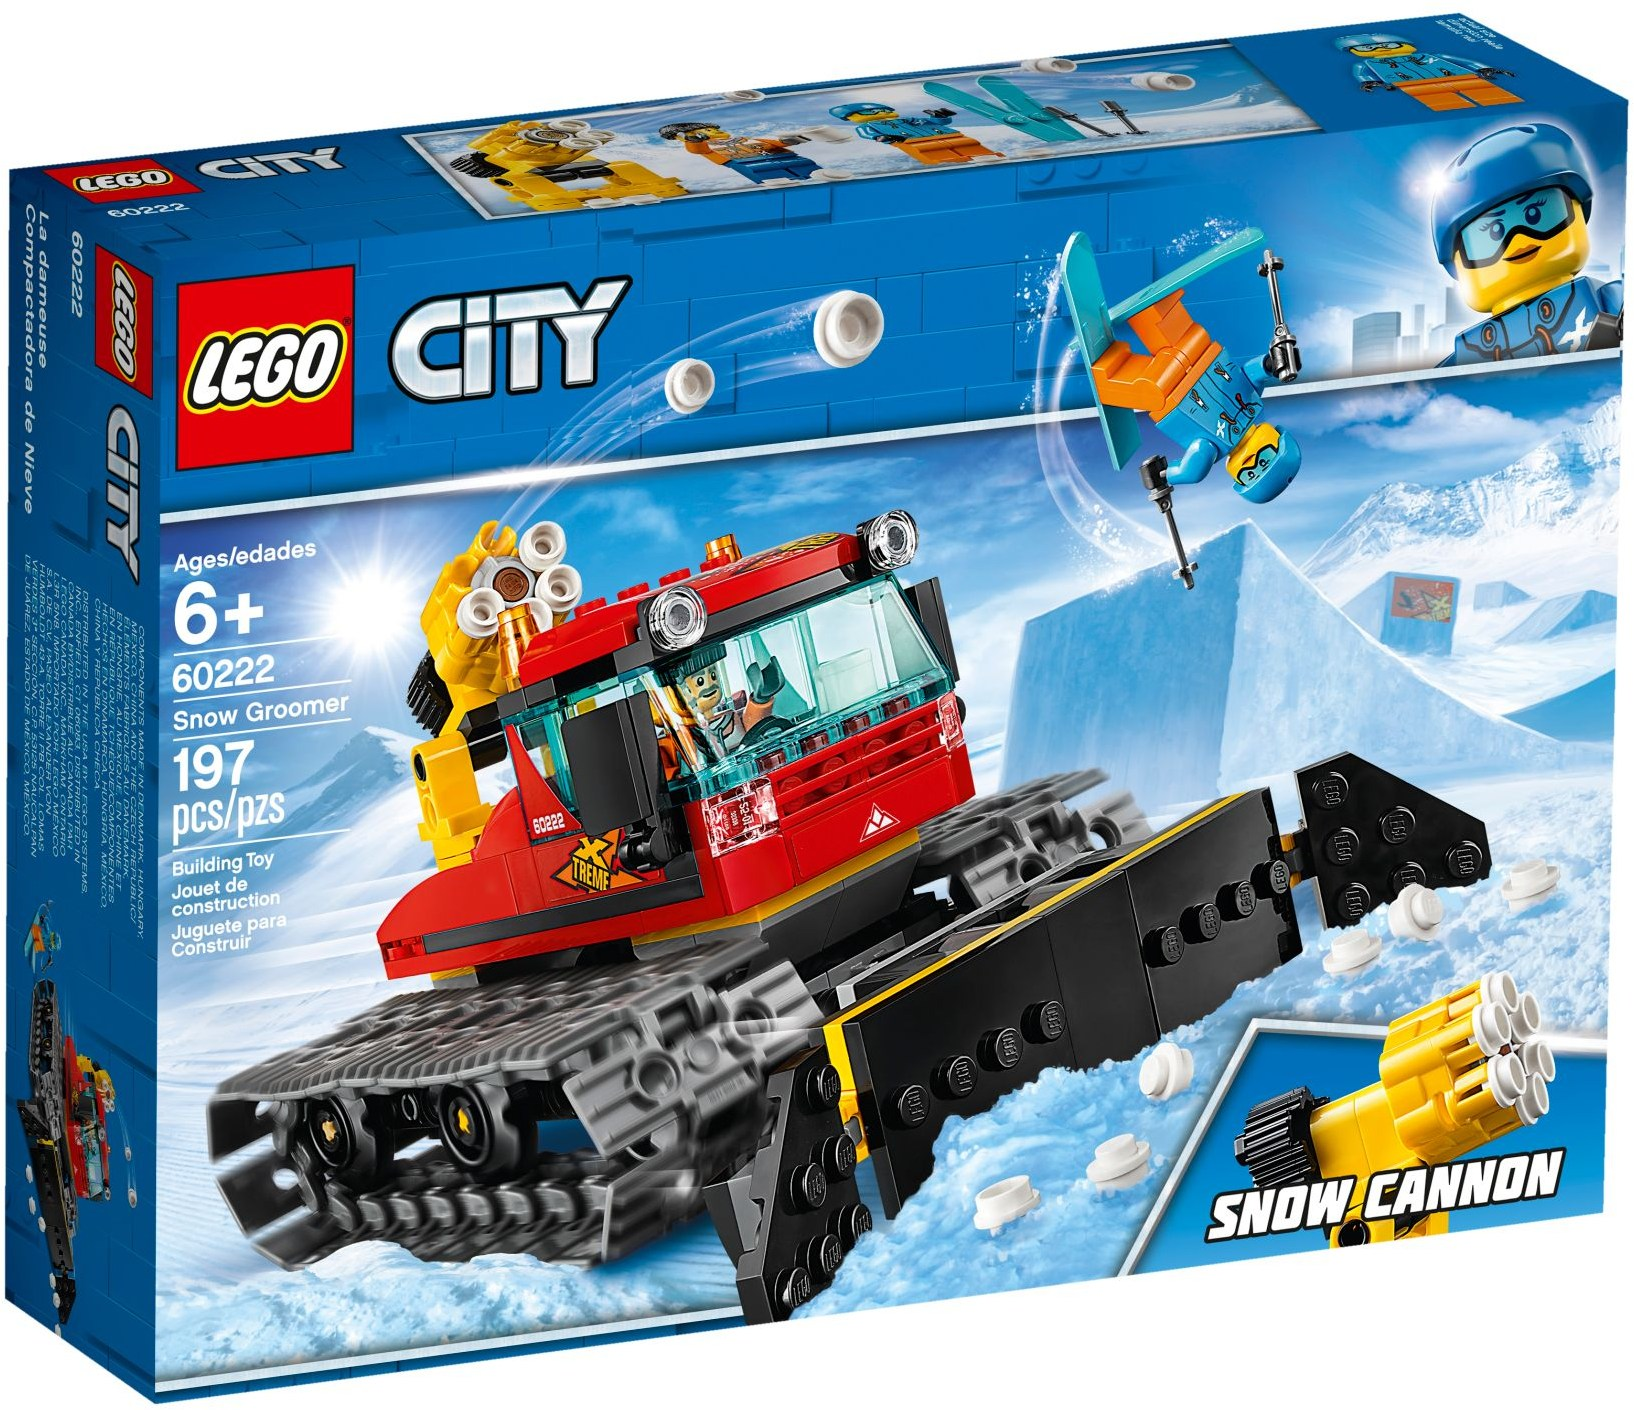 LEGO Town Sets: 60222 City Snow Groomer NEW